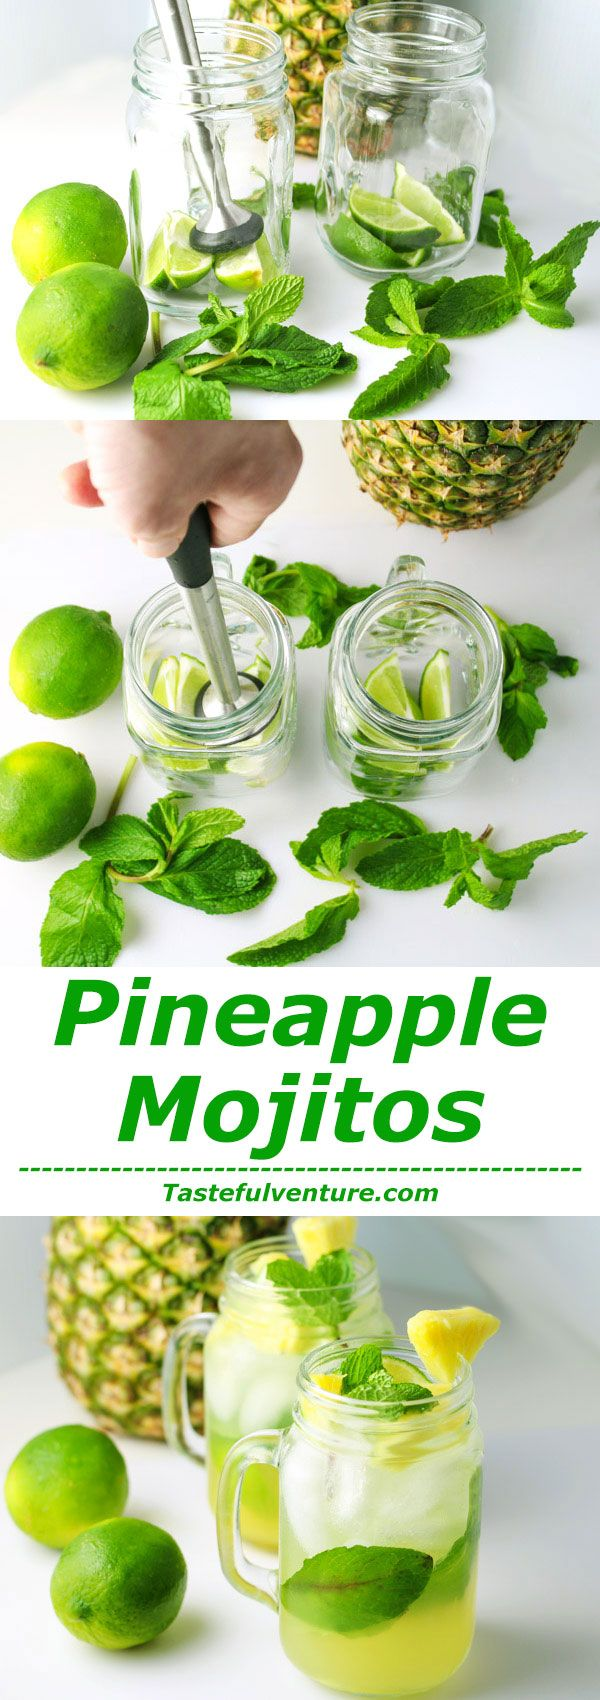 These Pineapple Mojitos are so light and refreshing, it's the perfect Cocktail!   Tastefulventure.com